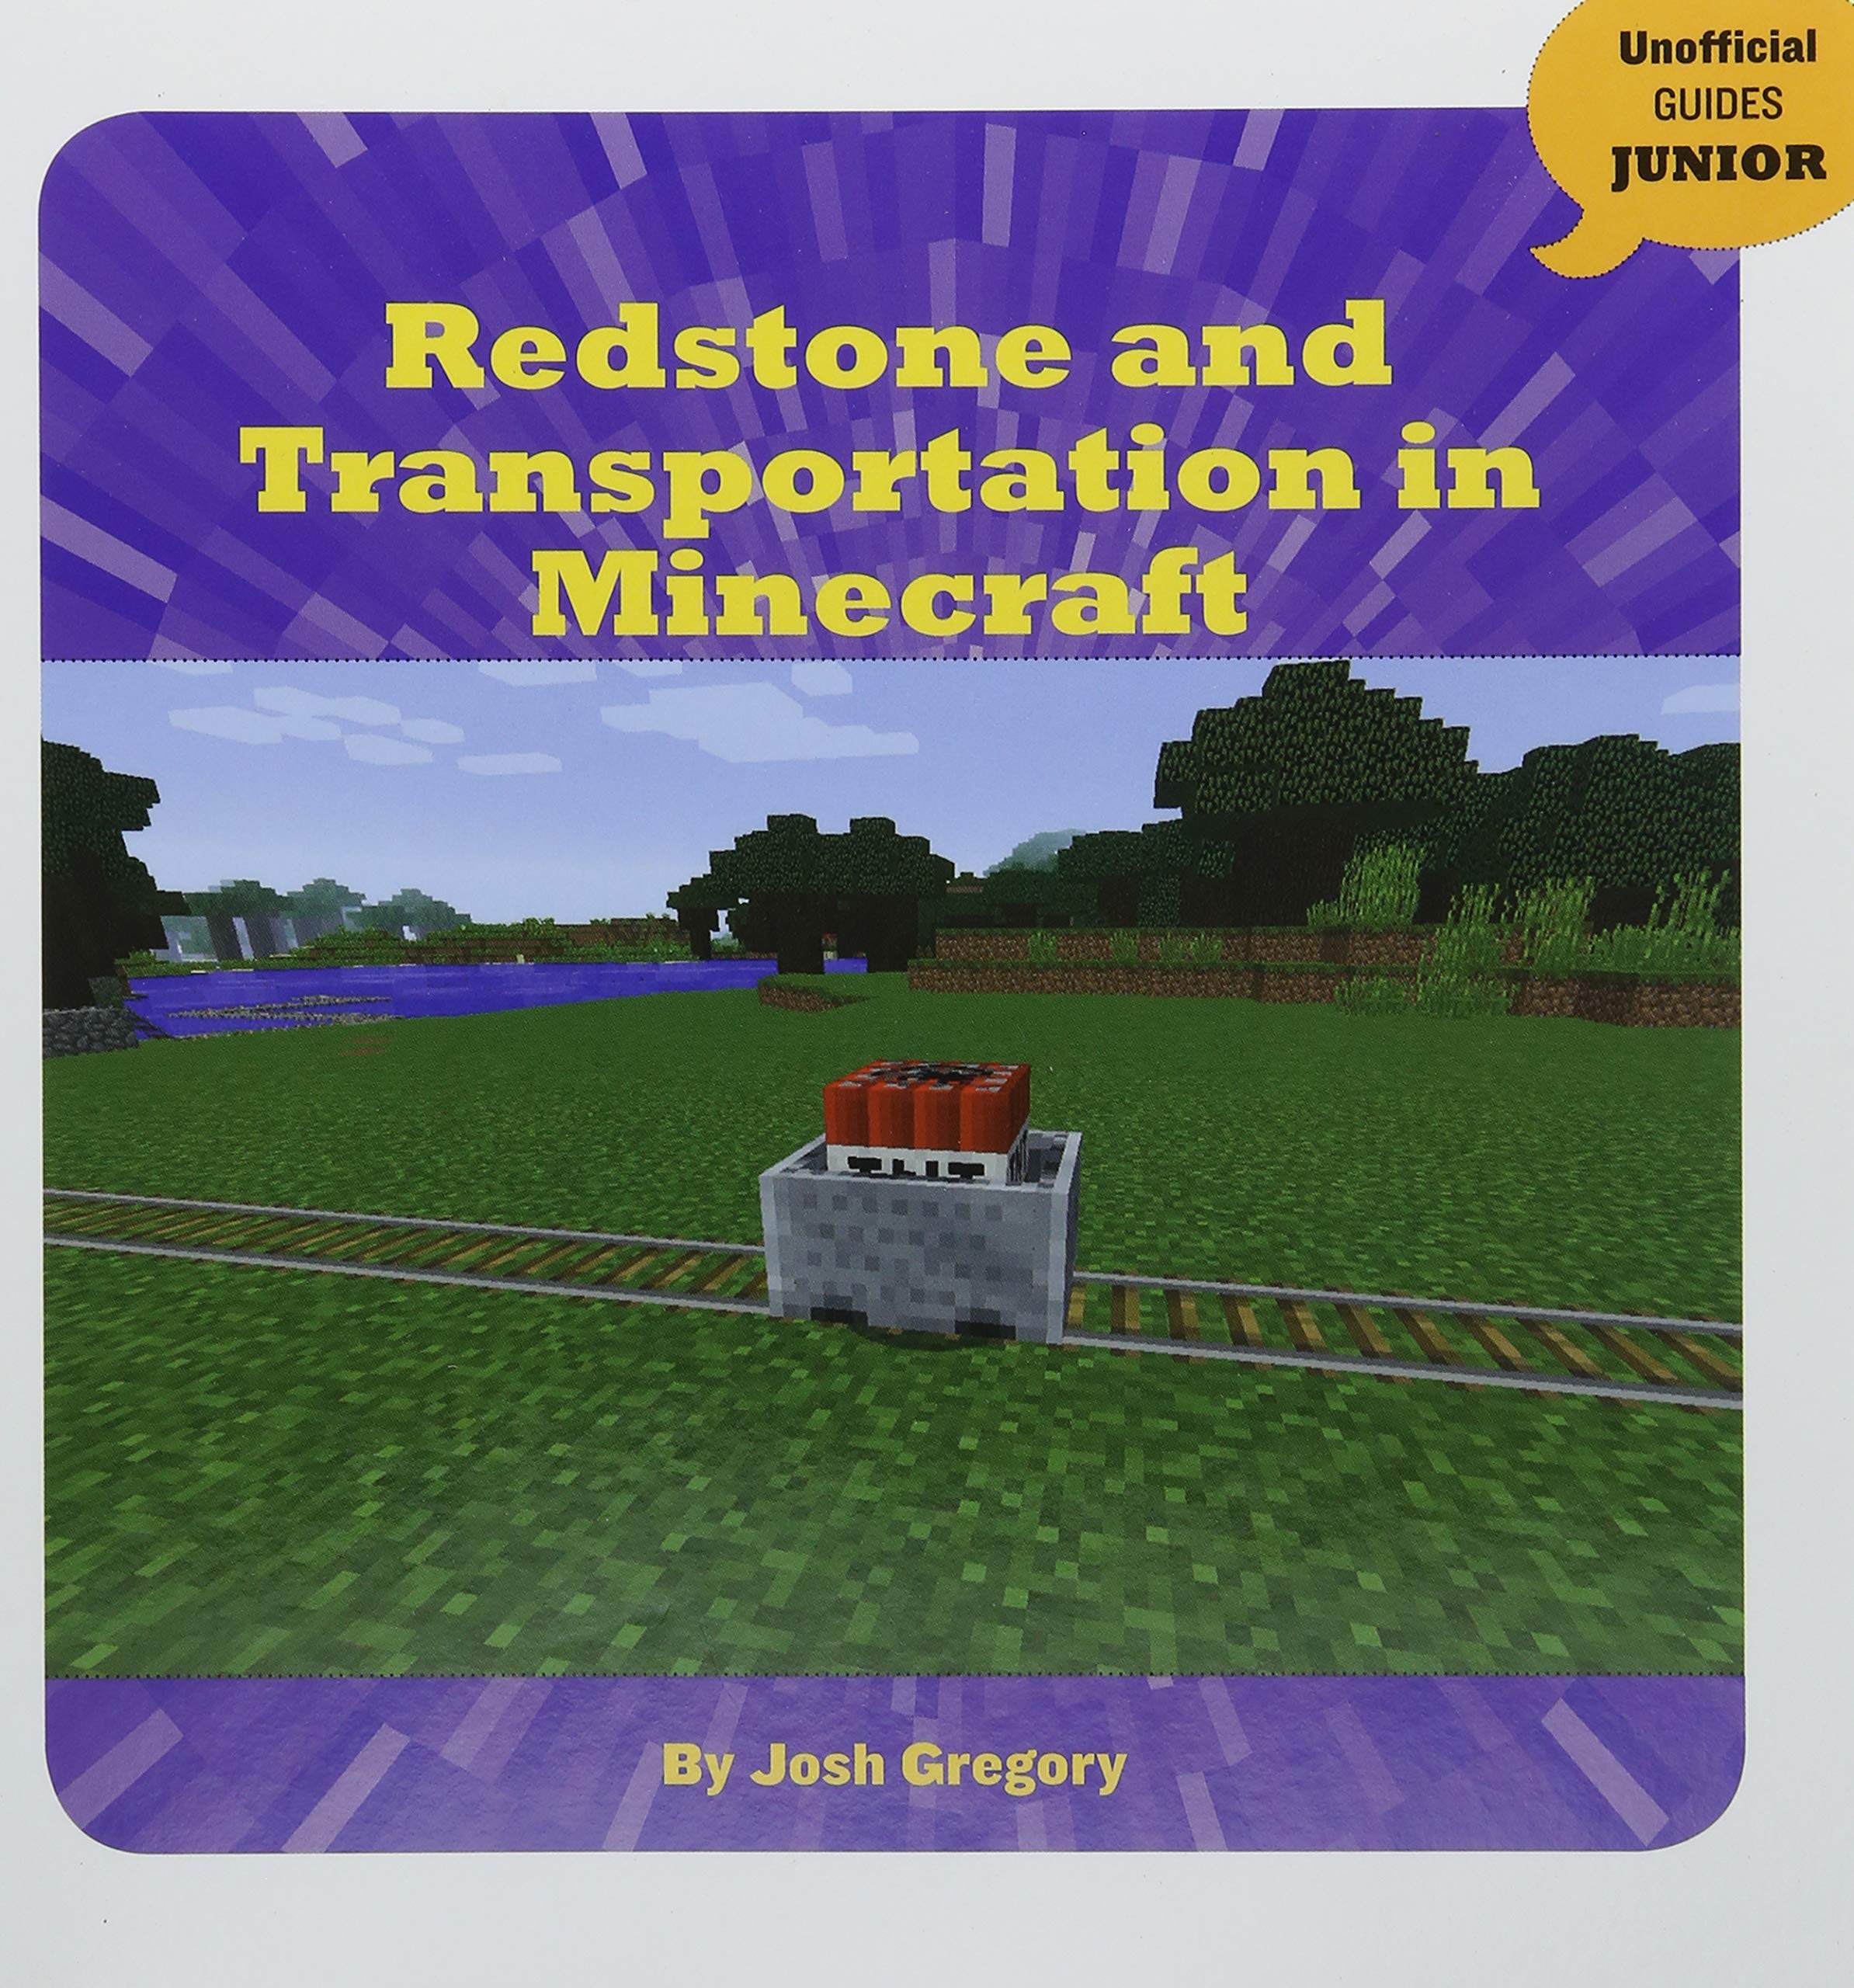 Redstone and Transportation in Minecraft (Unofficial Guides Junior) by Cherry Lake Pub (Image #1)